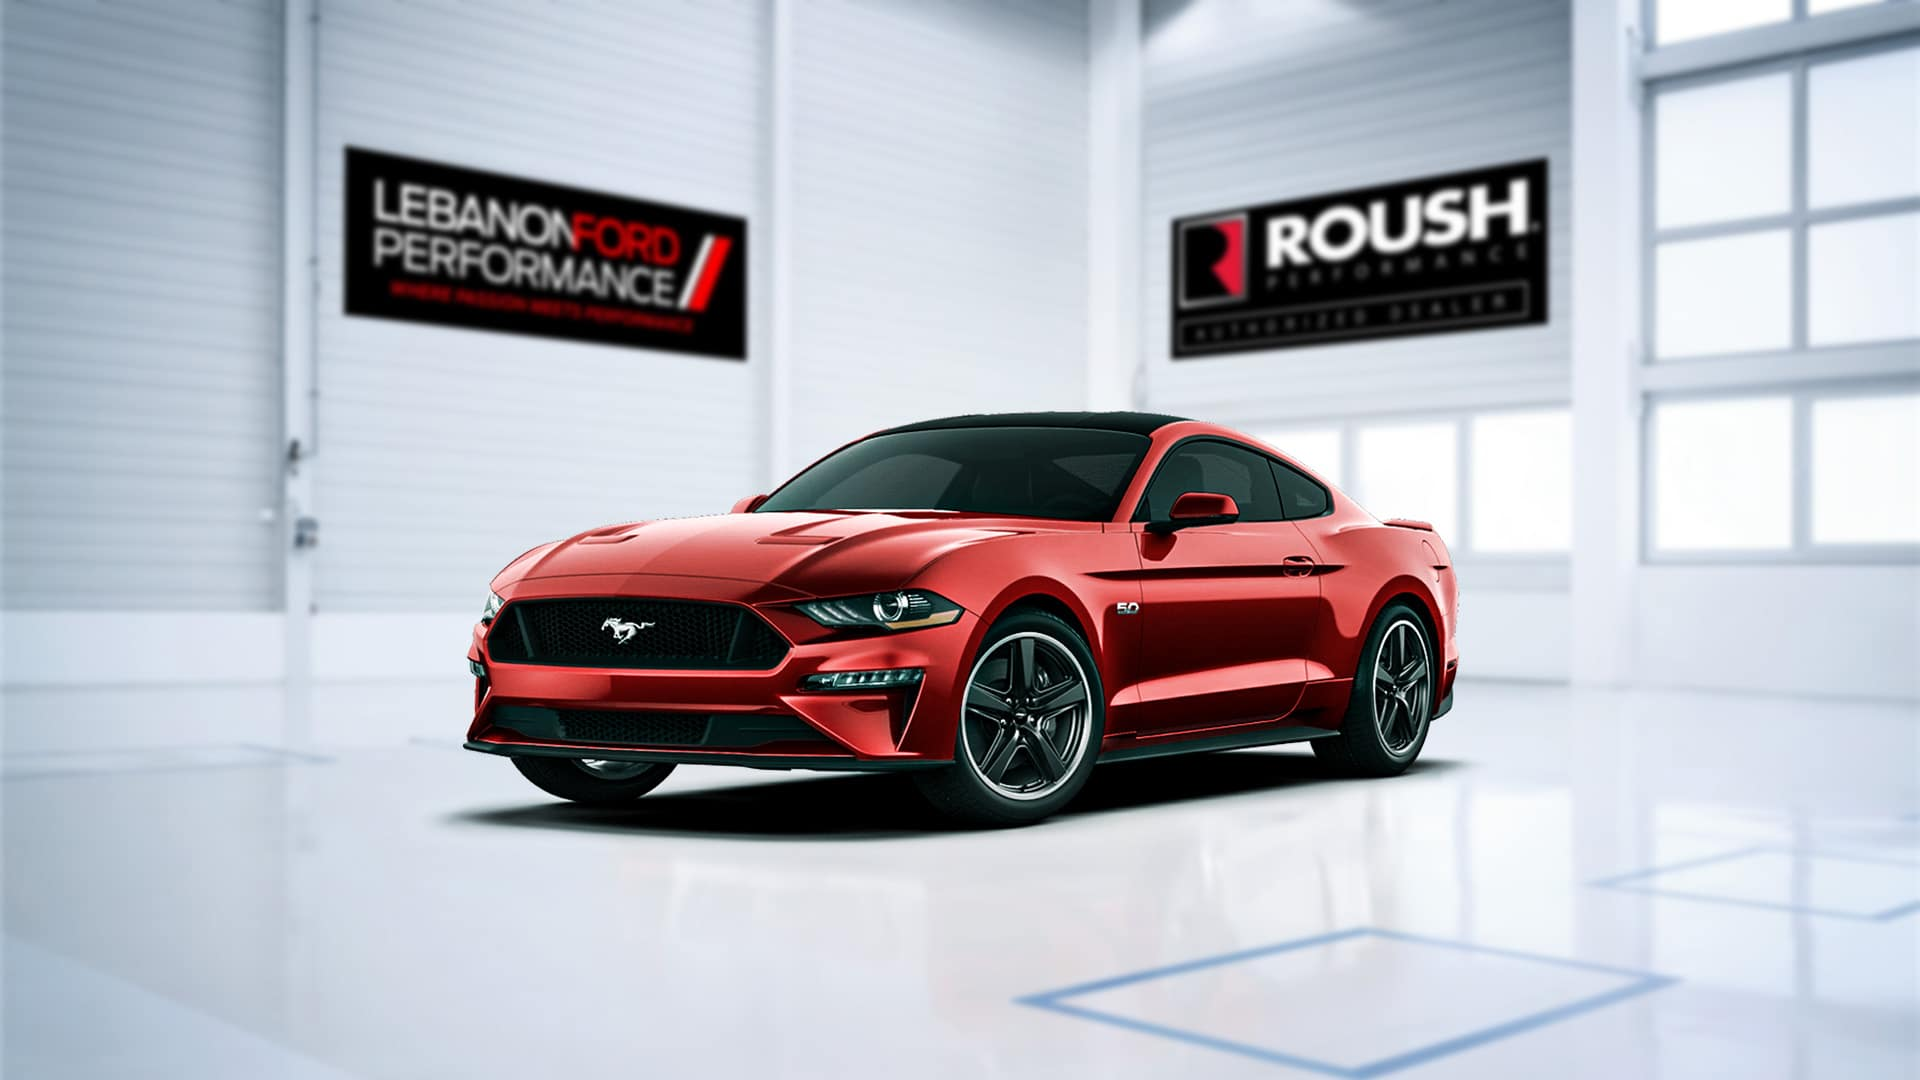 Welcome to Lebanon Ford Performance